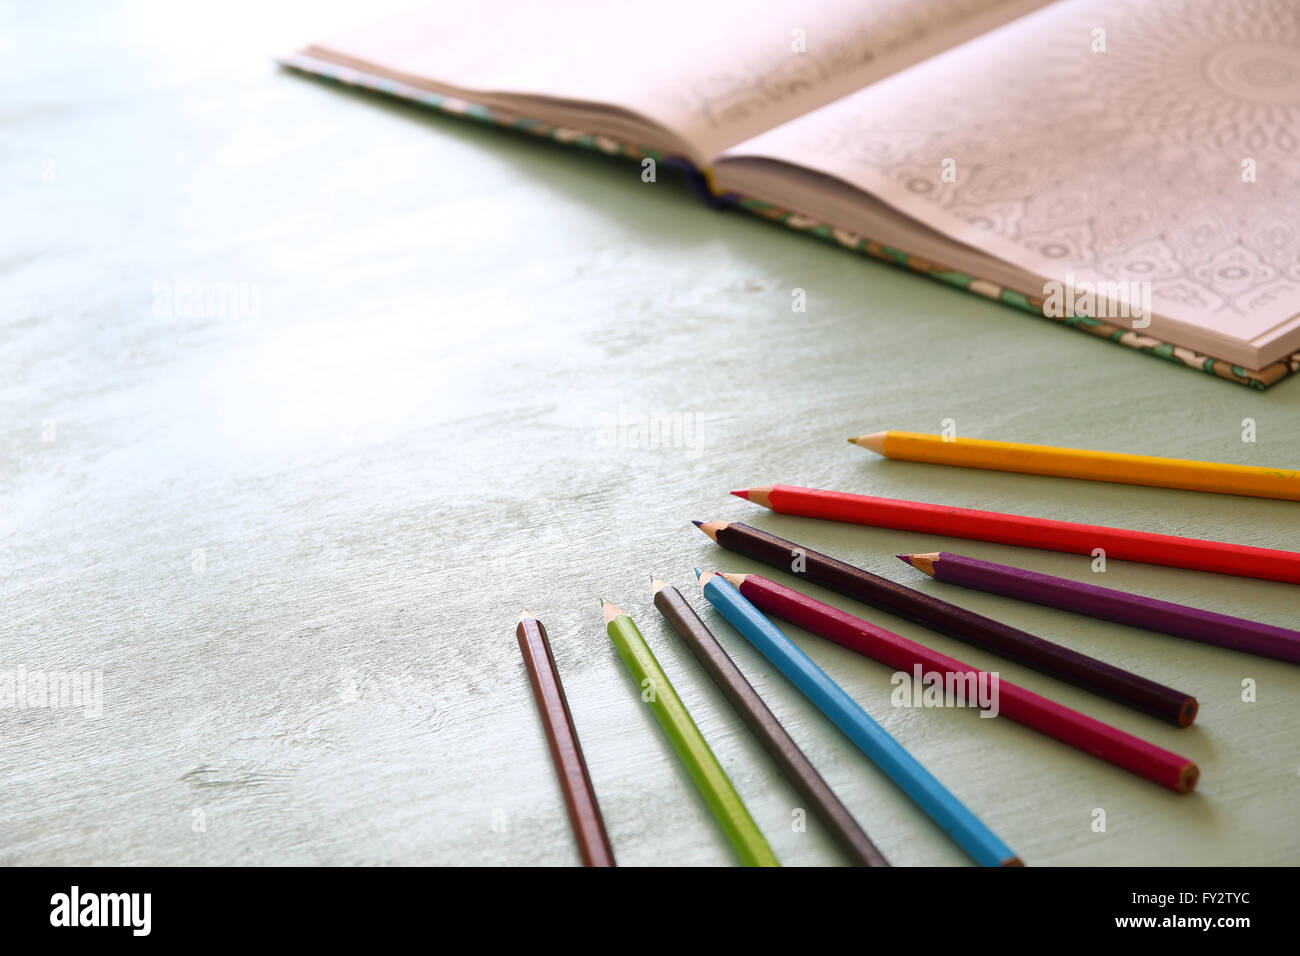 adult coloring book trend, for stress relief. top view. selective focus. - Stock Image